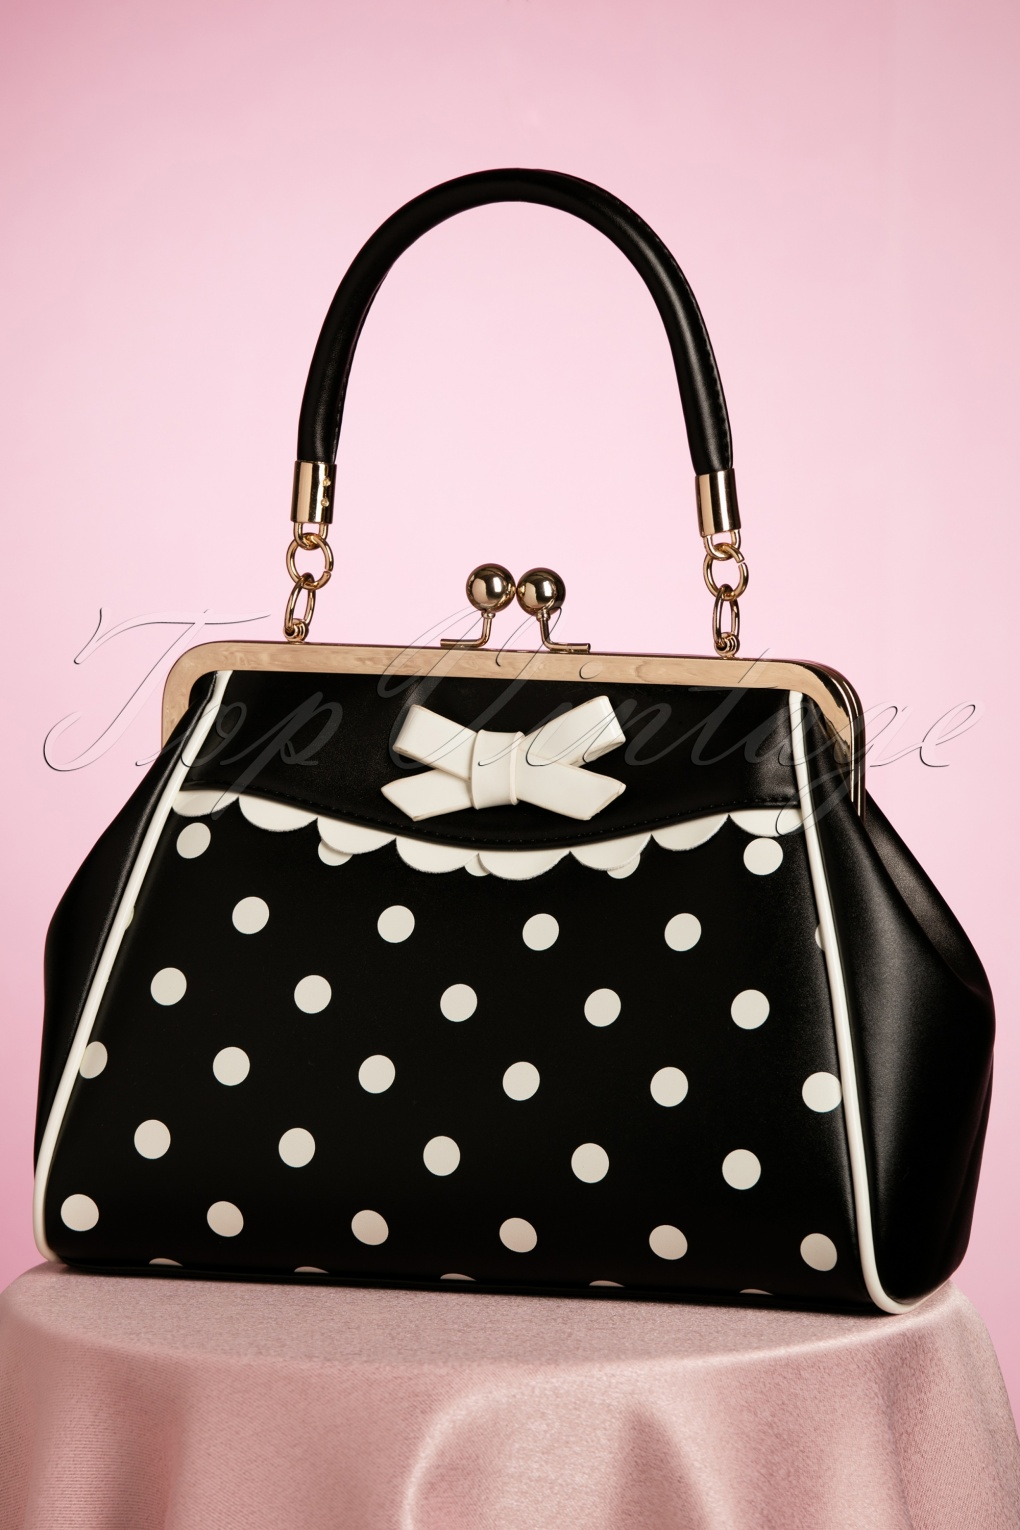 1950s Handbags, Purses, and Evening Bag Styles 50s Crazy Little Thing Bag in Black �35.87 AT vintagedancer.com